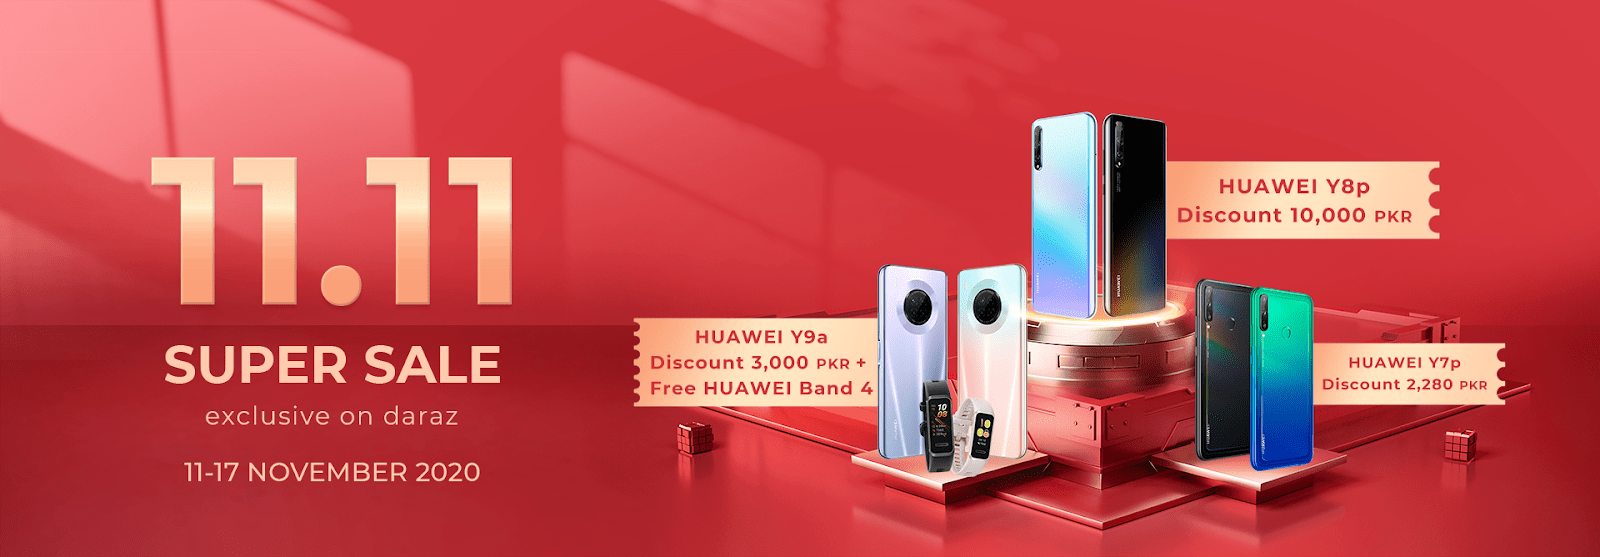 Huawei Launches Mega 11.11 Sale for its Devices Exclusively on Daraz.pk